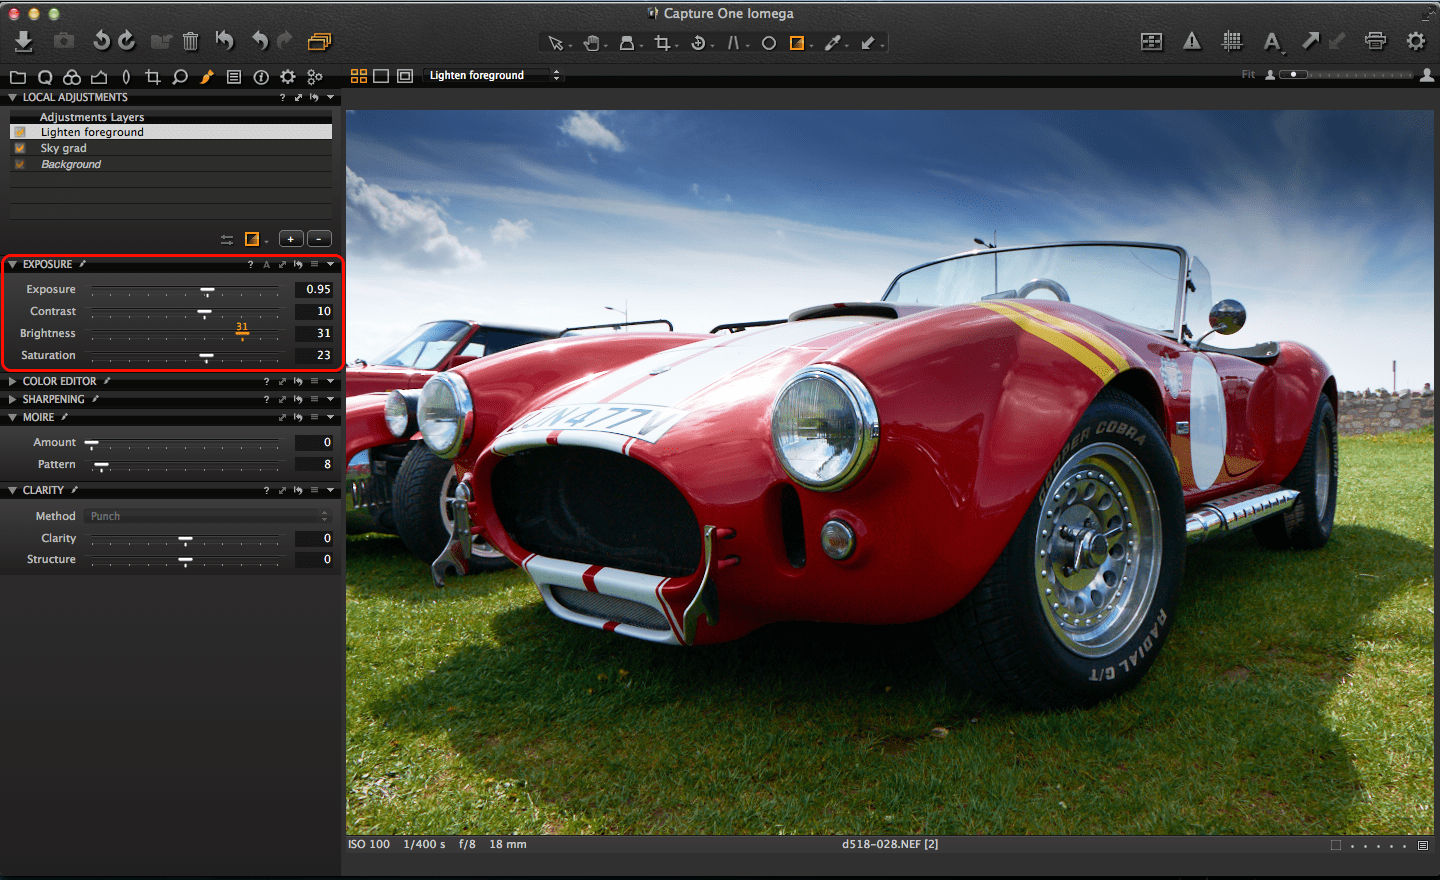 Capture One gradient mask